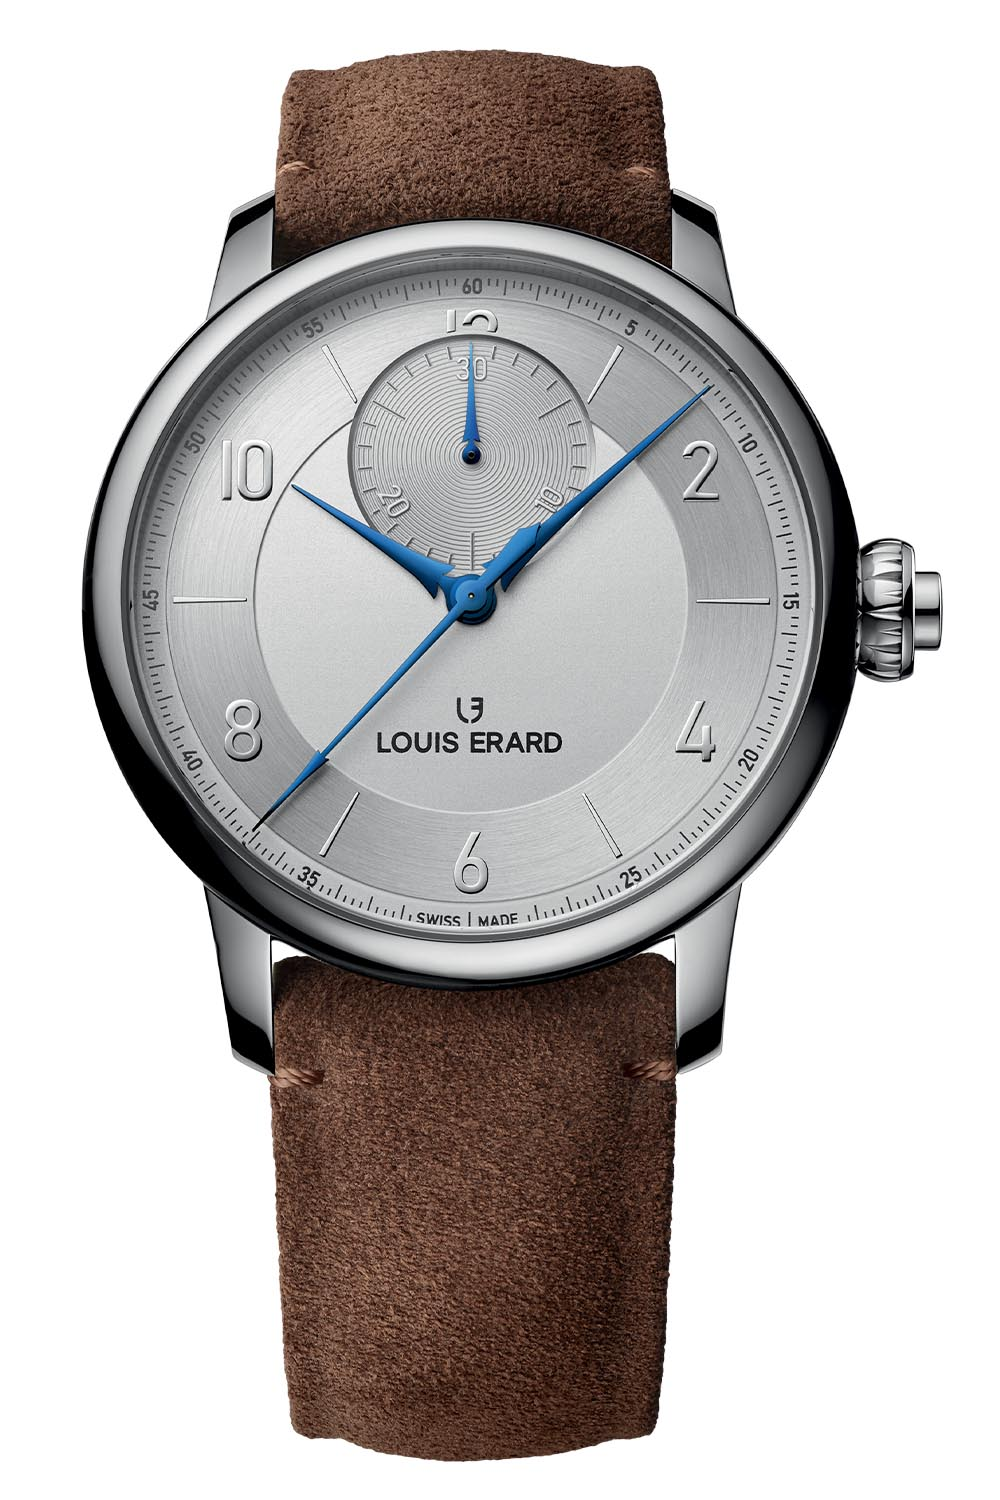 Louis Erard Excellence Triptych - Regulator - Small Seconds - Chrono Monopusher